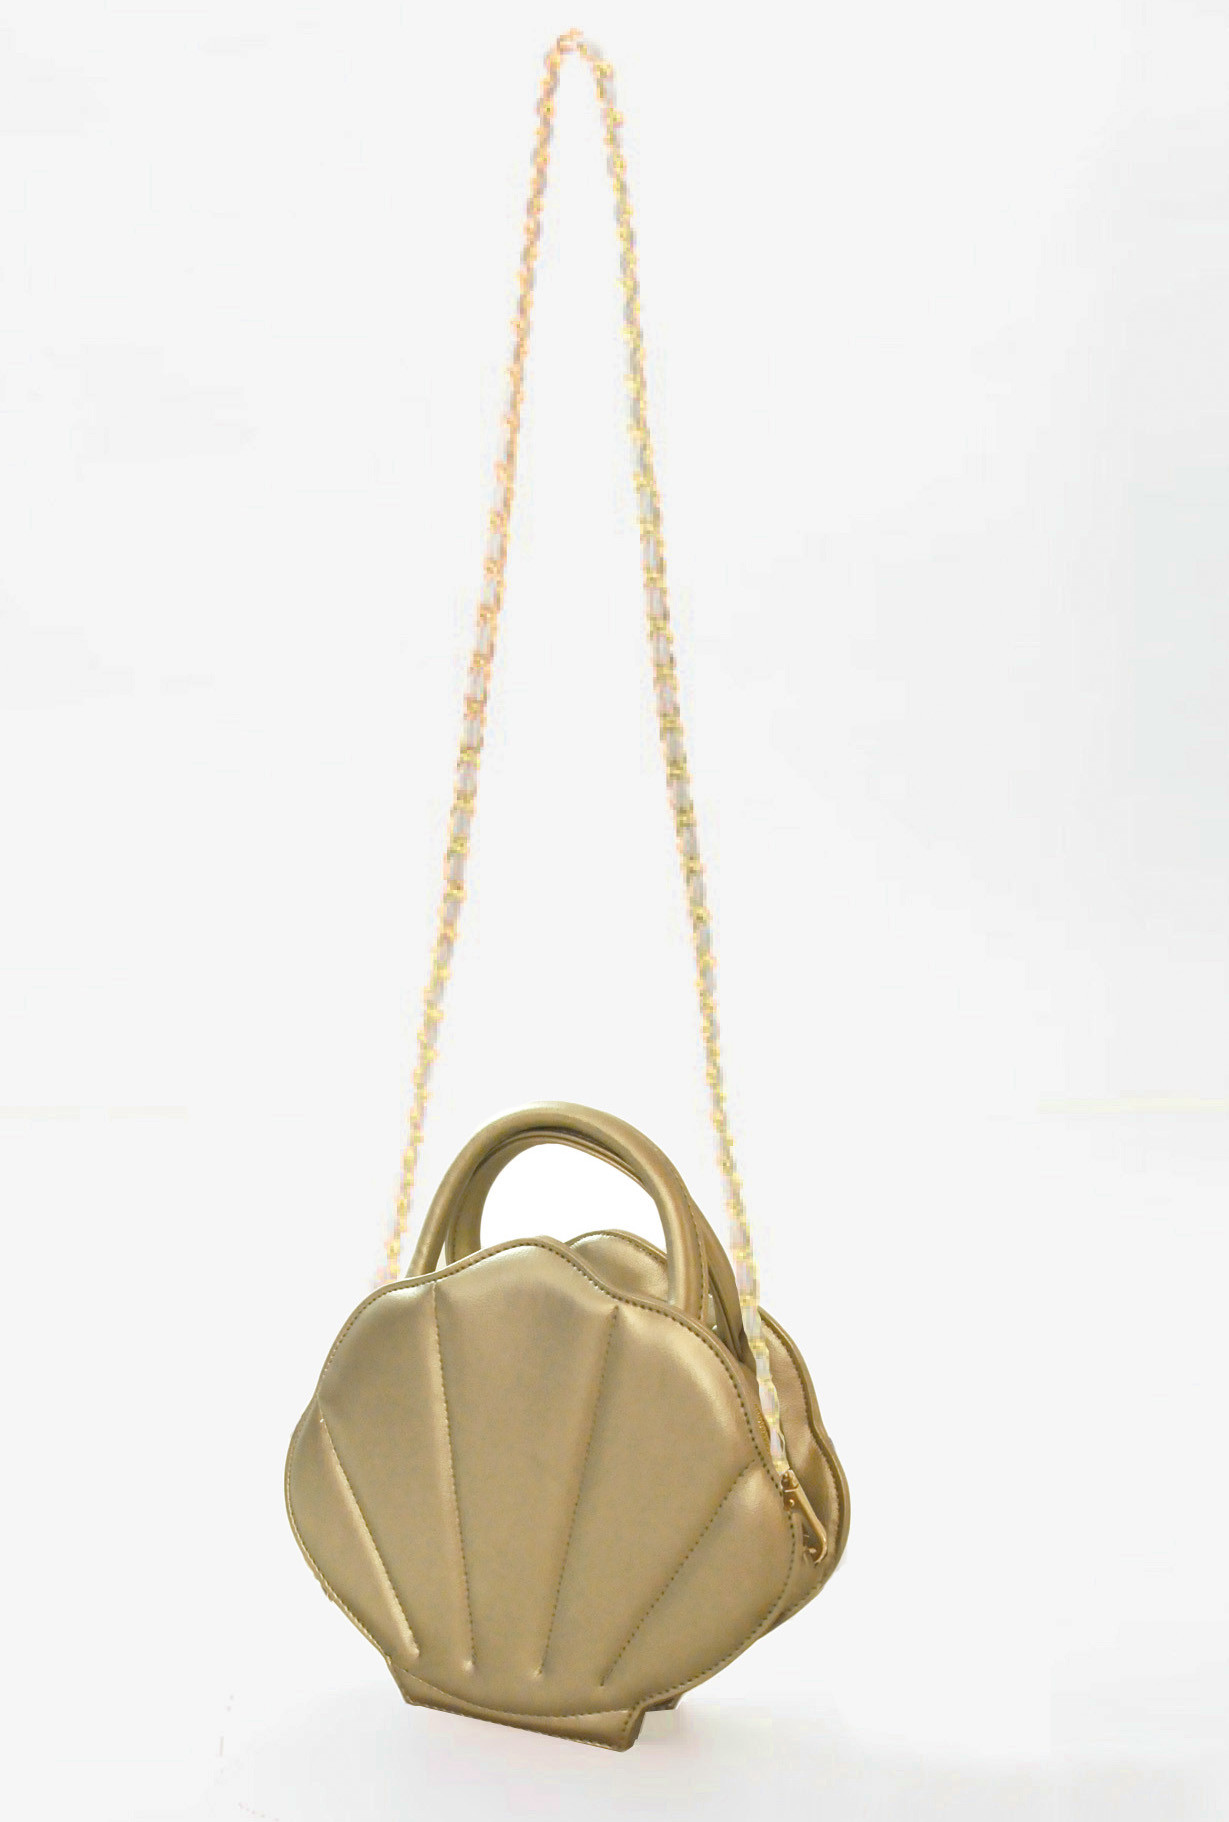 Mermaid Whimsy Sea Shell Purse In Champagne Gold